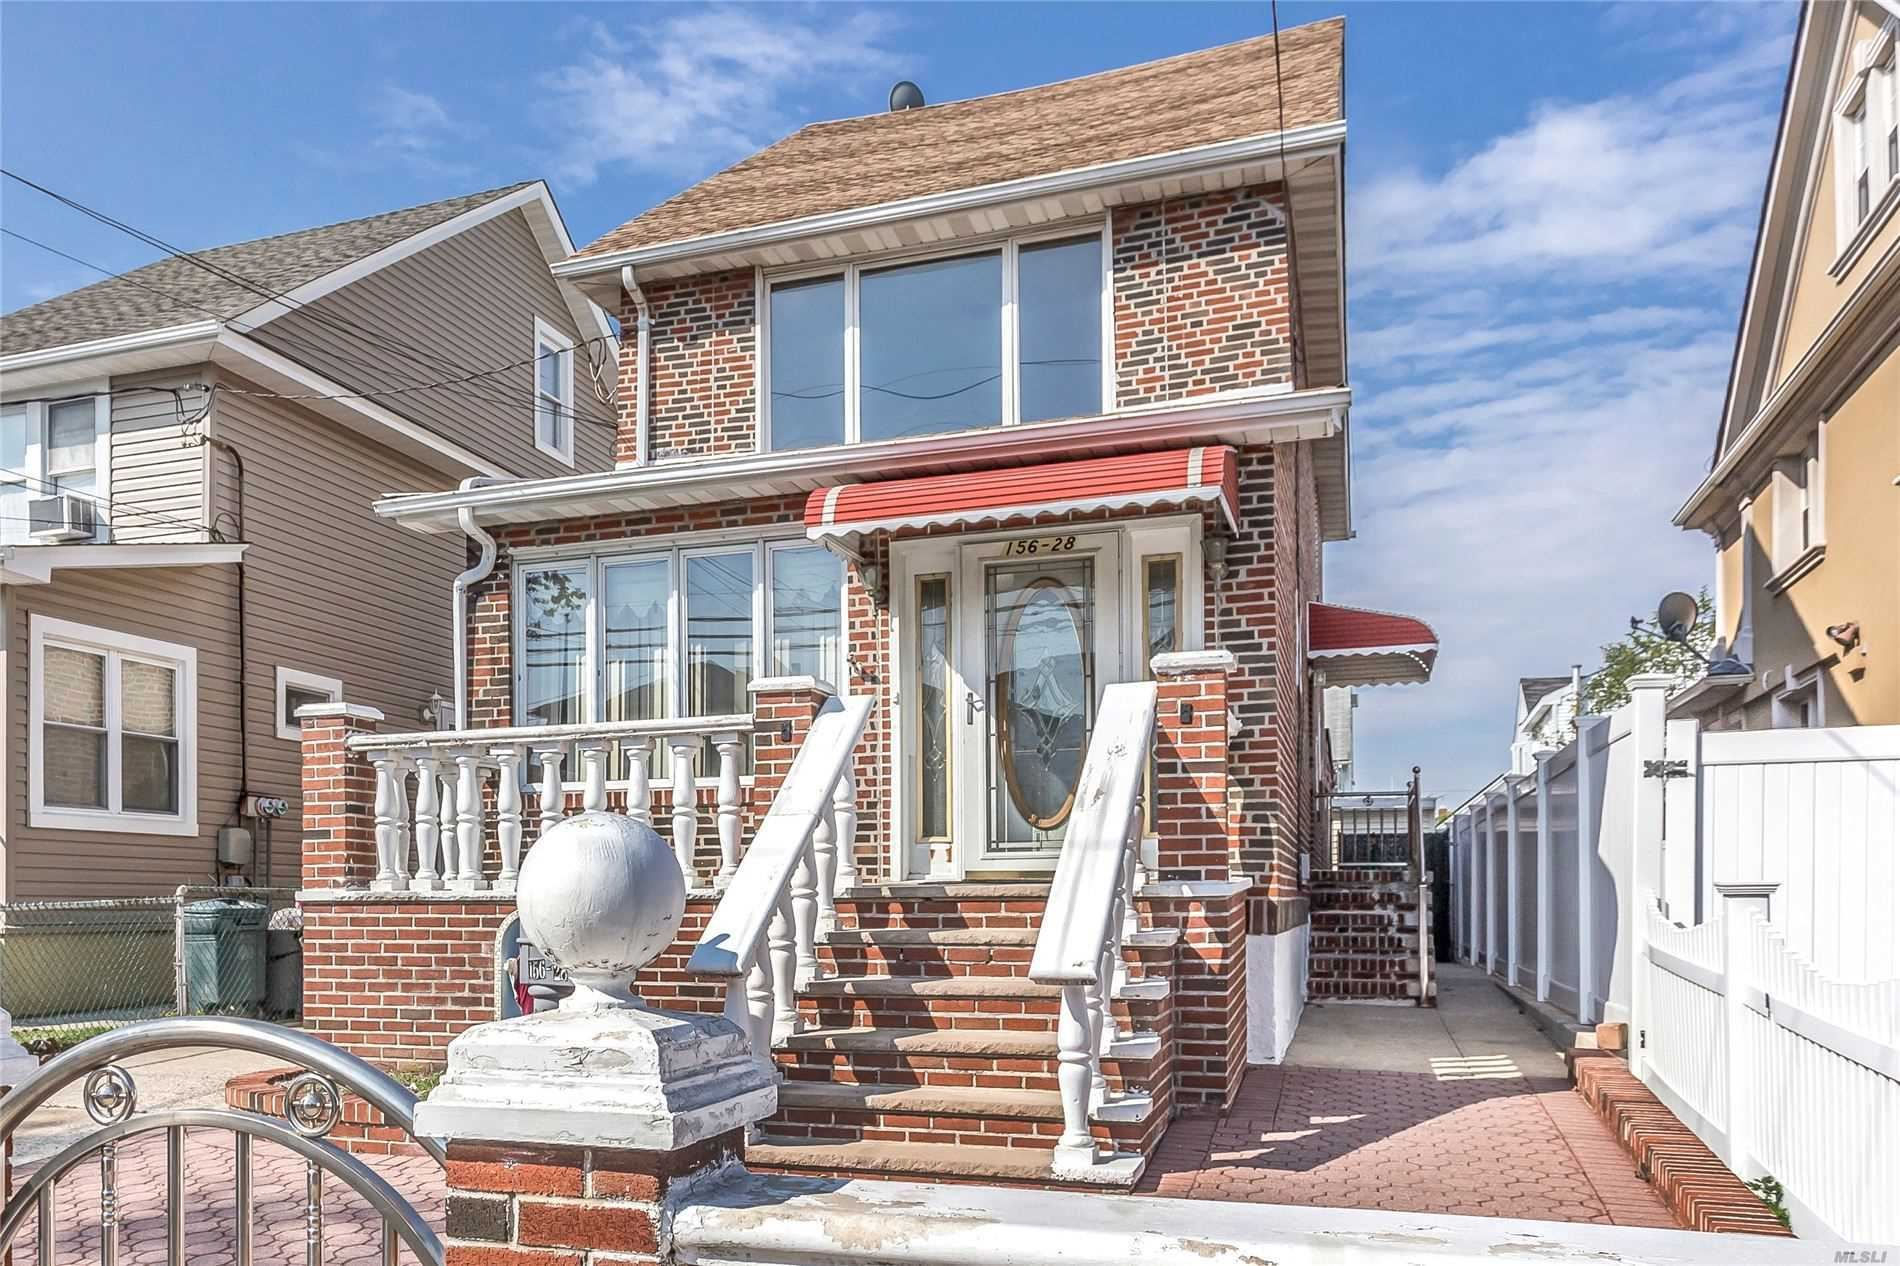 156-28 101st Street, Howard Beach, NY 11414 - MLS#: 3164707